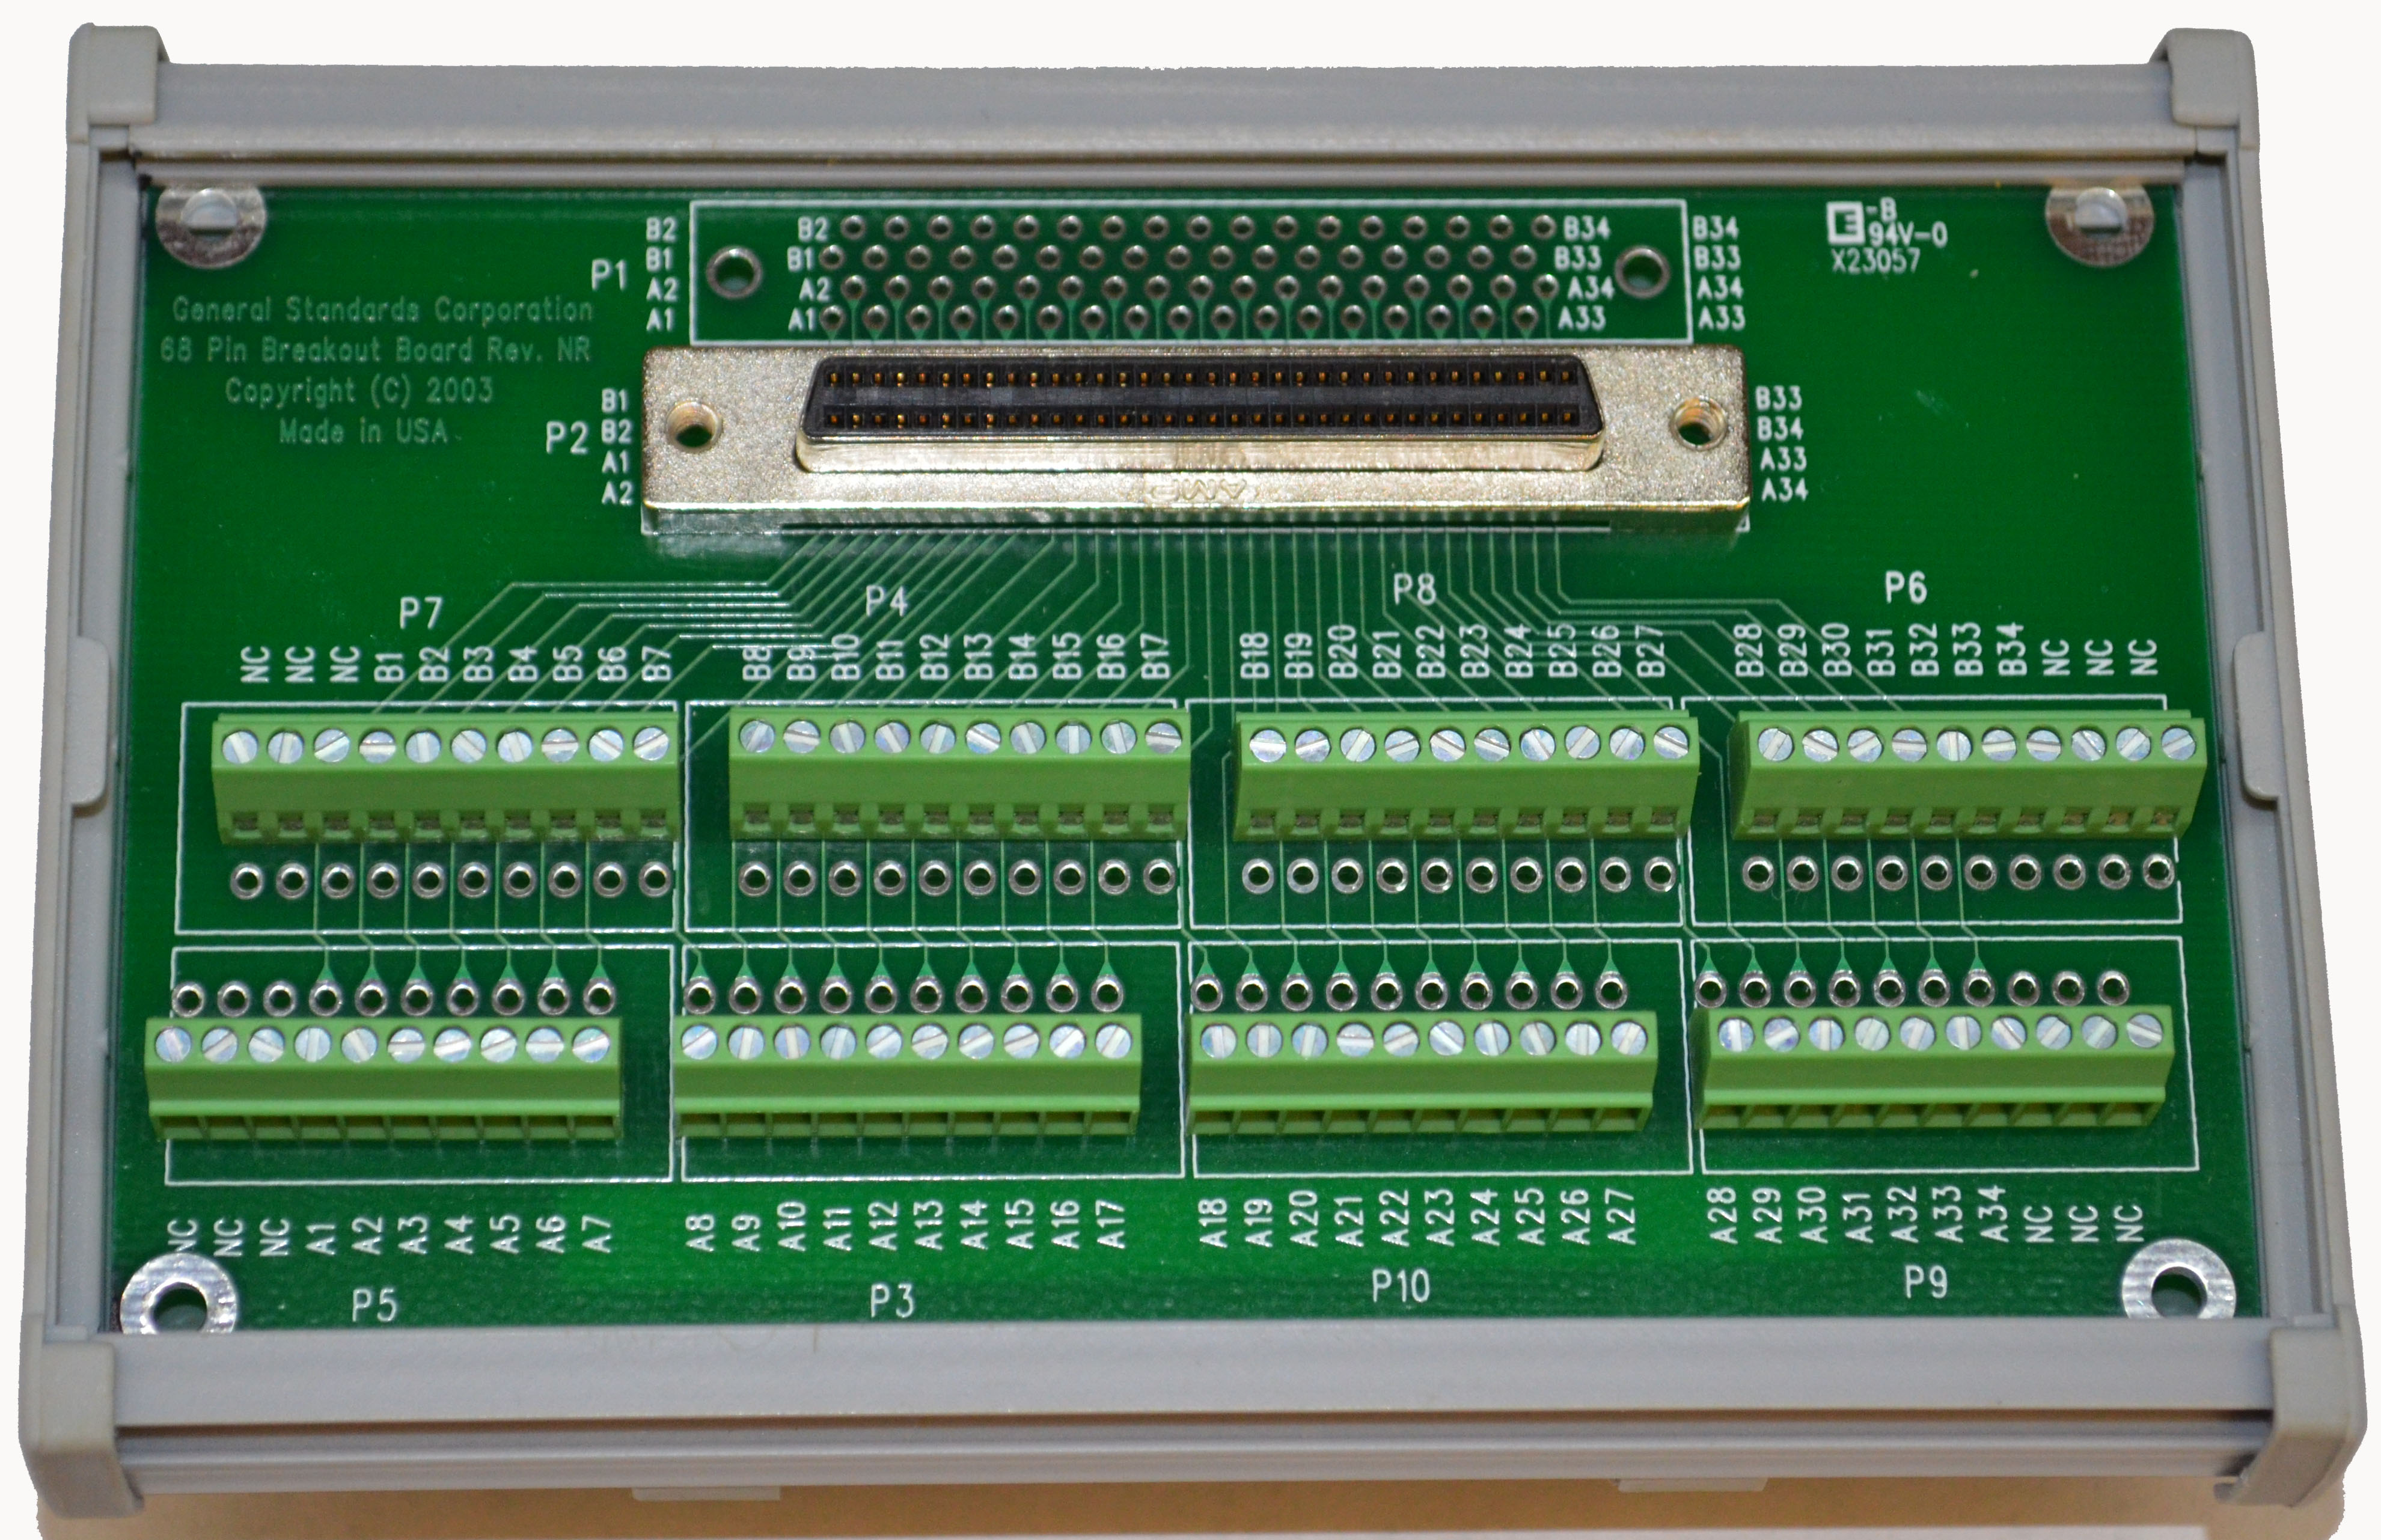 accessories note if screw clamp terminals and din rail enclosure for the pmc hpdi32a board would be cblifmod pmc hpdi32a 1 1